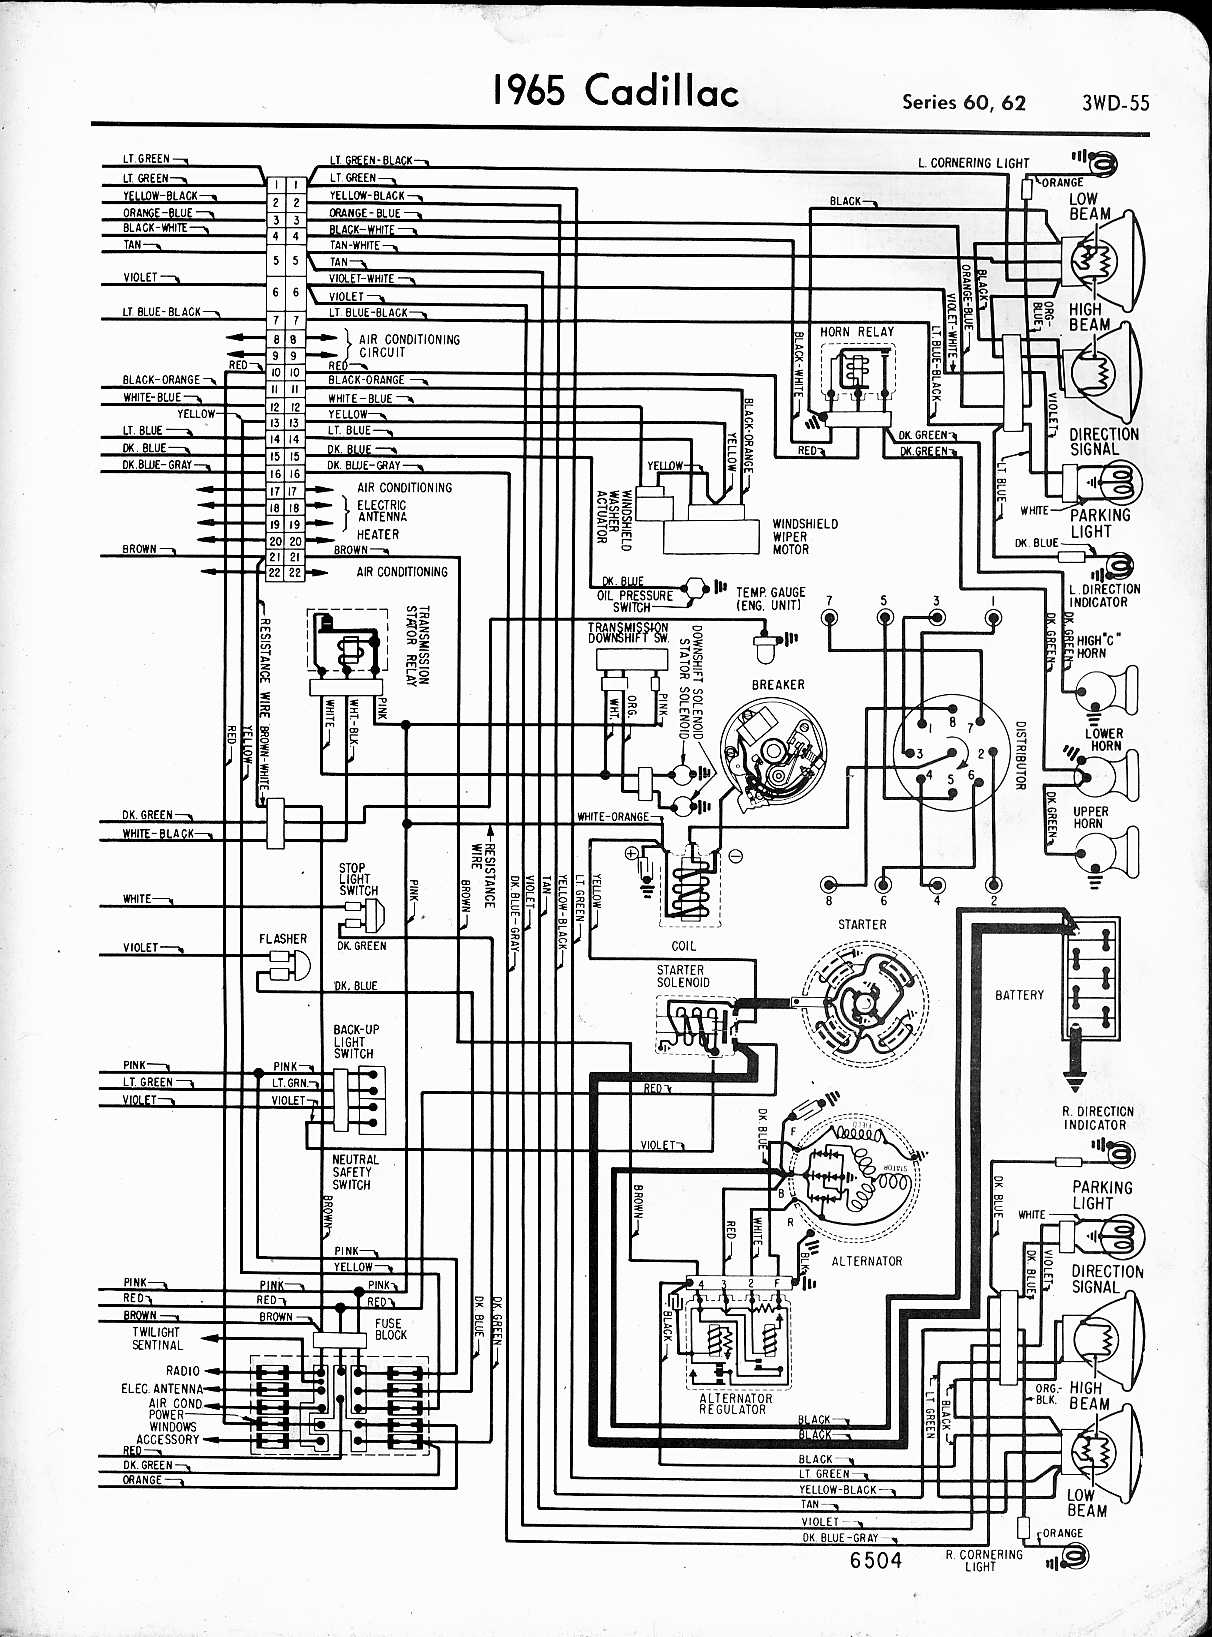 1999 cadillac eldorado engine diagram best wiring library rh 75 princestaash org